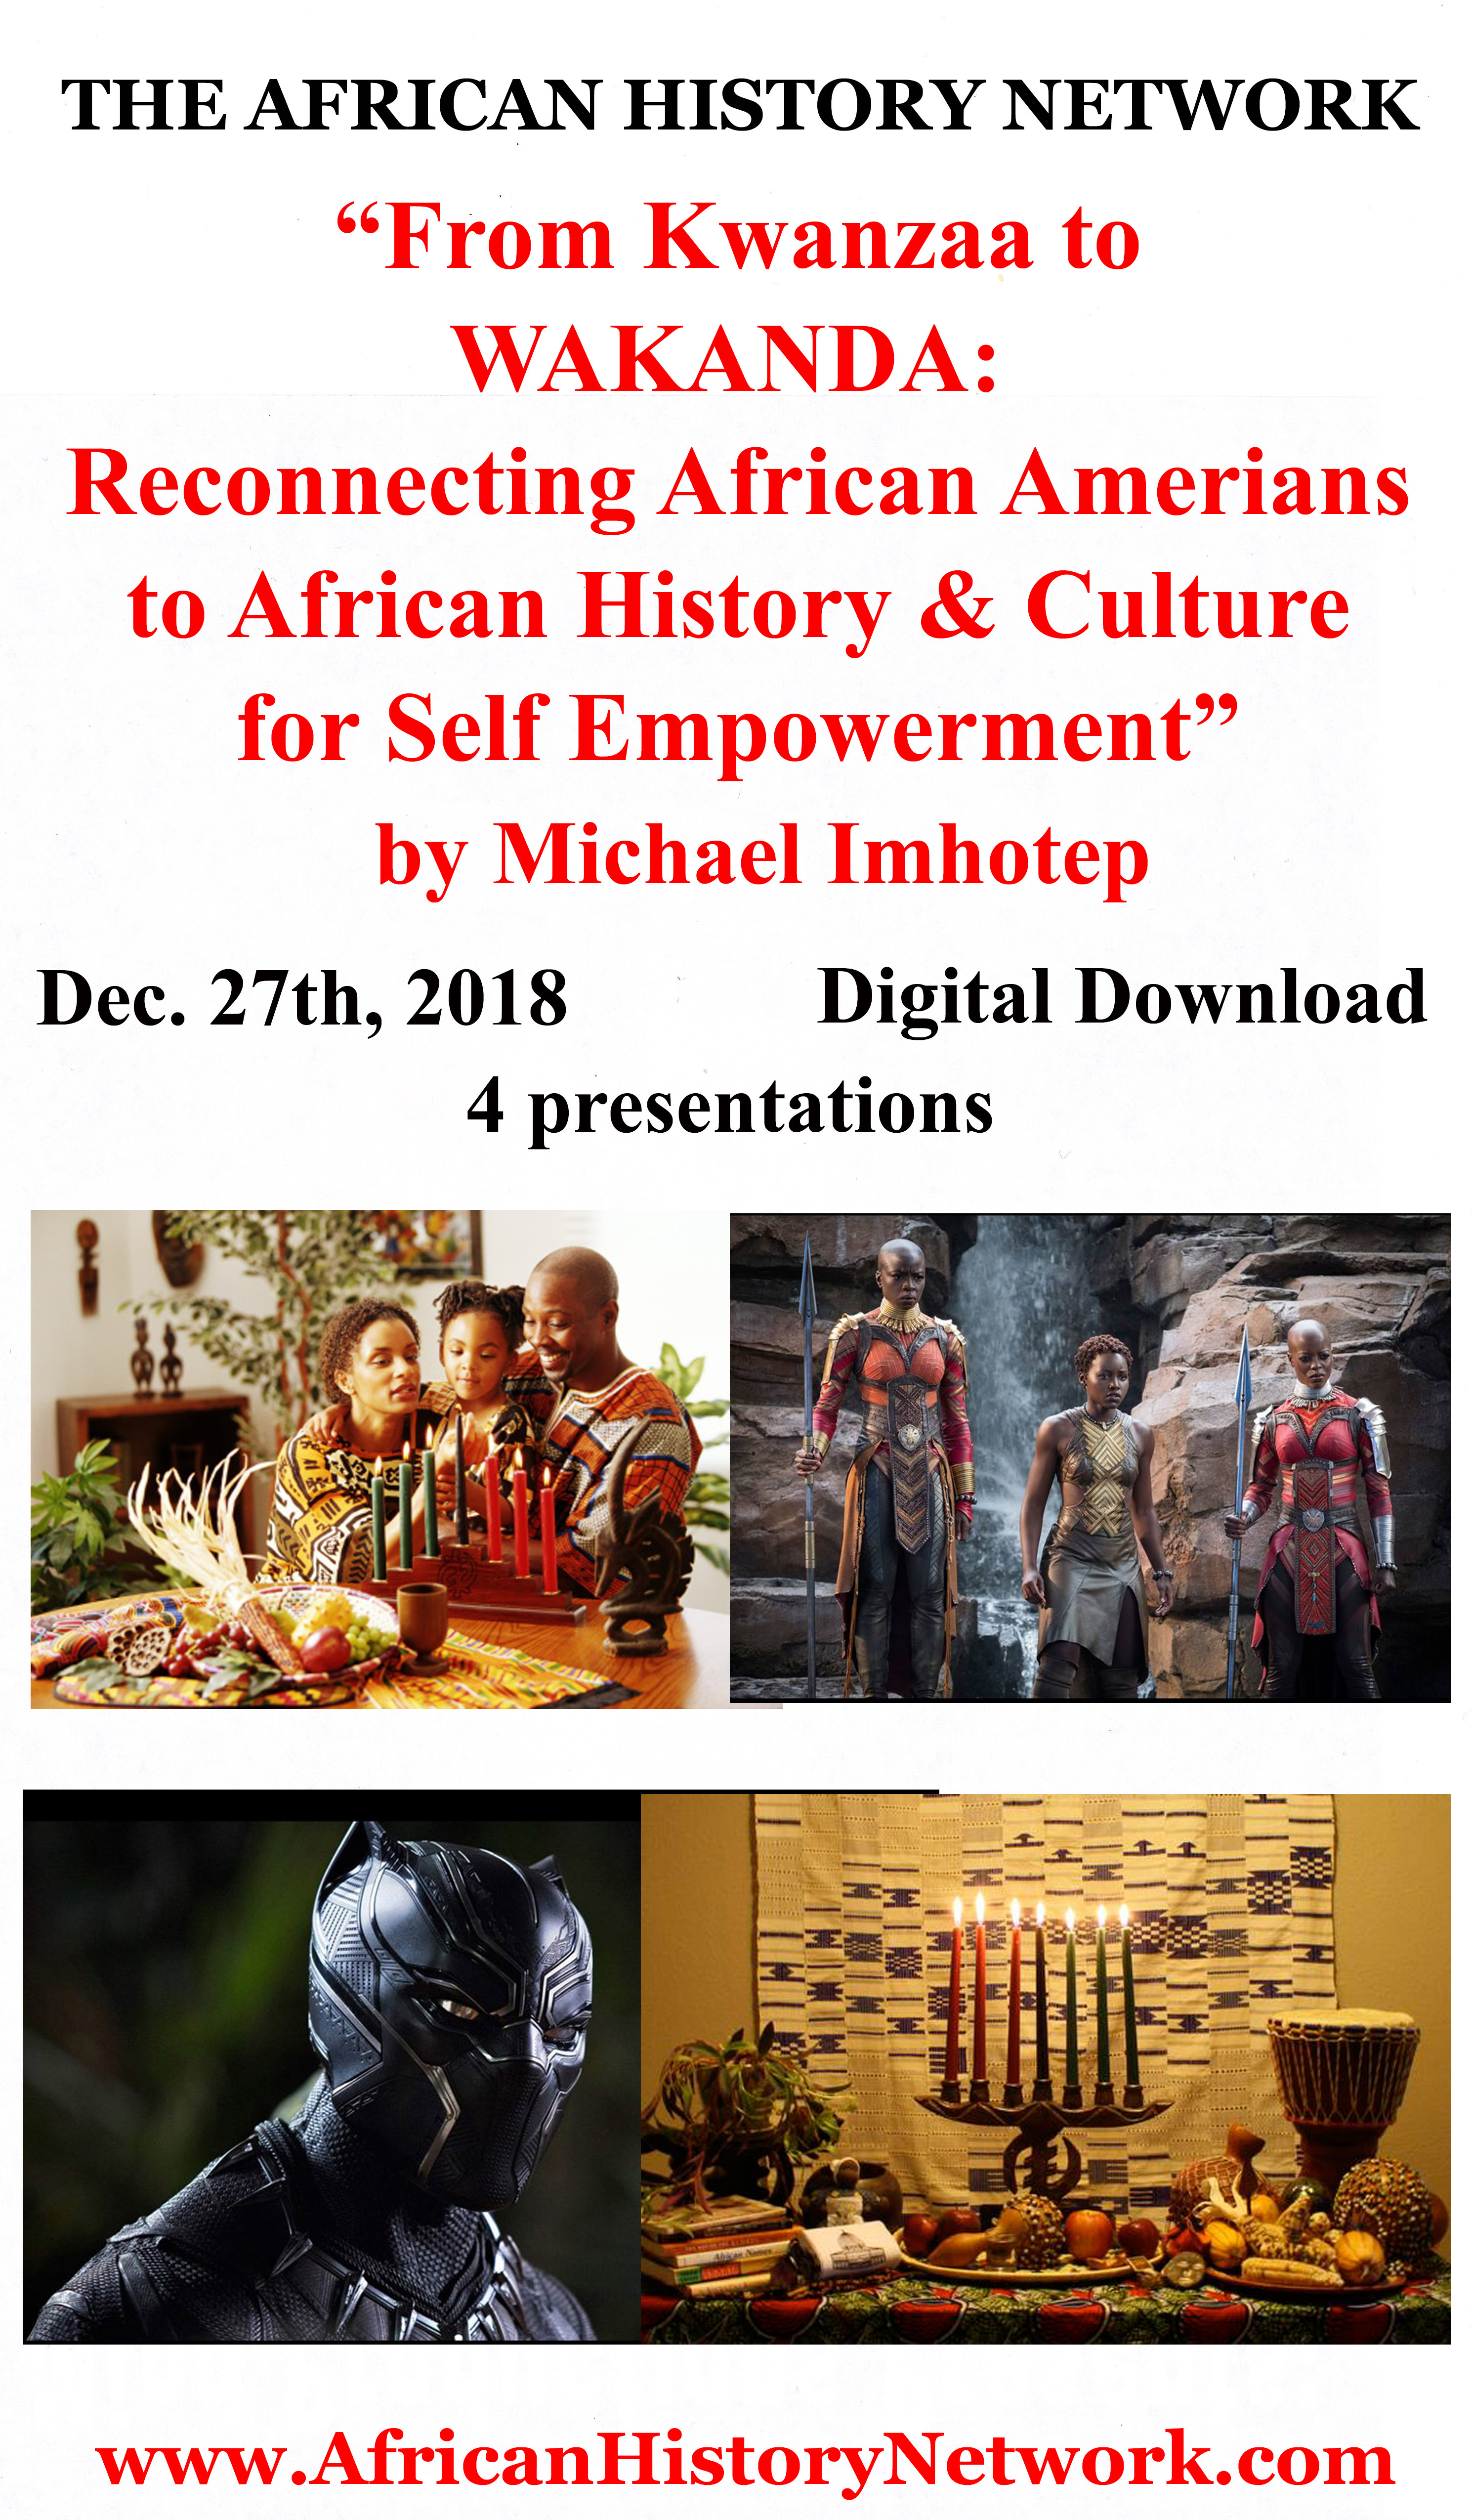 Michael_Imhotep_-_From_Kwanzaa_to_Wakanda_12-27-18_-_Download_Front_Insert_Label